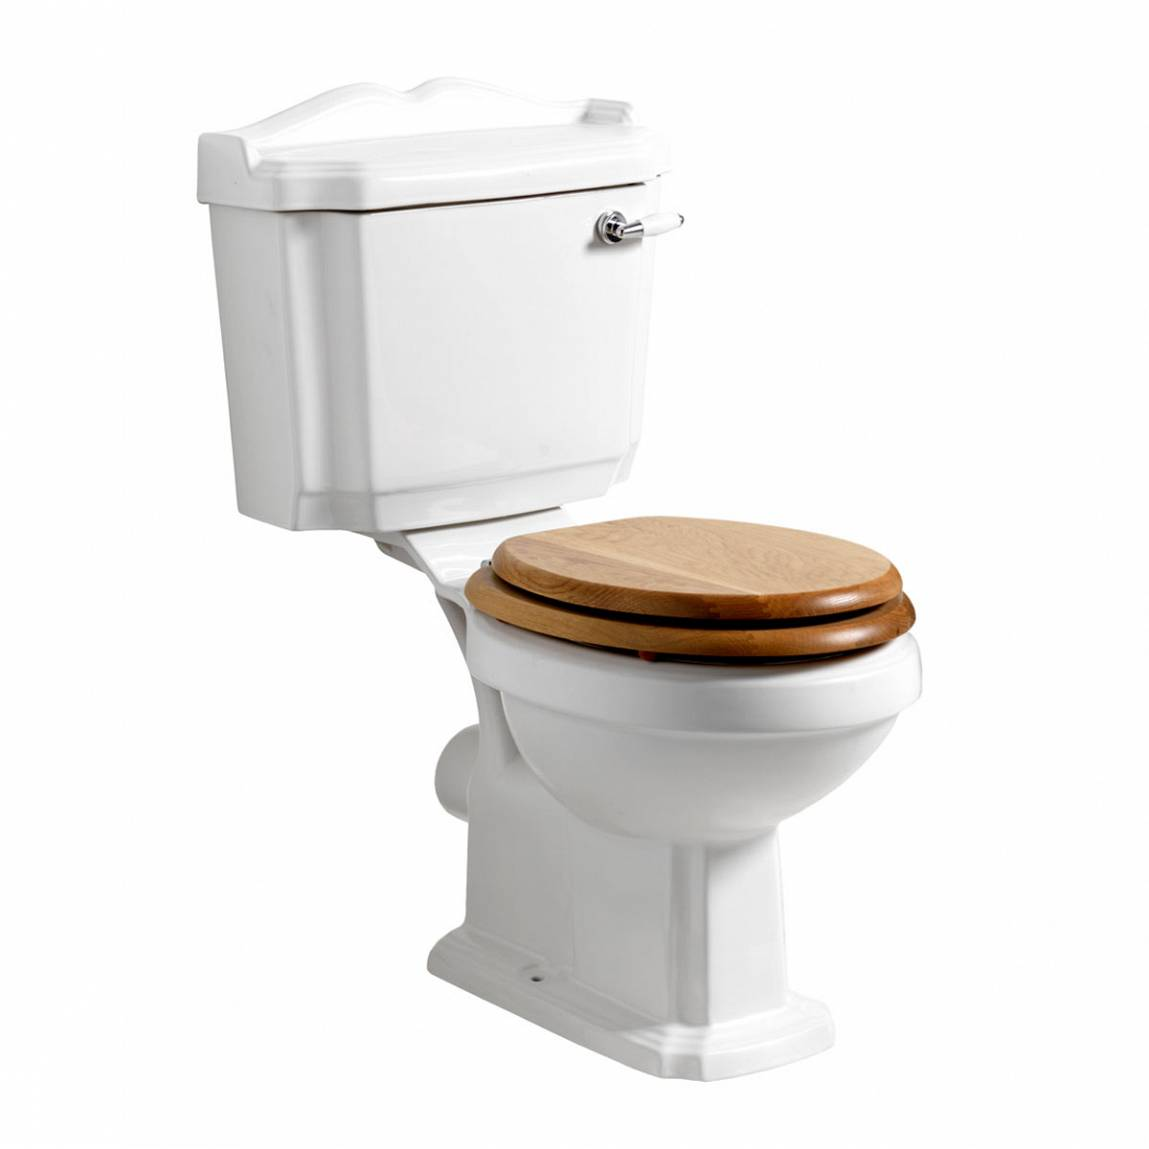 Image of Winchester Close Coupled Toilet inc Oak Seat